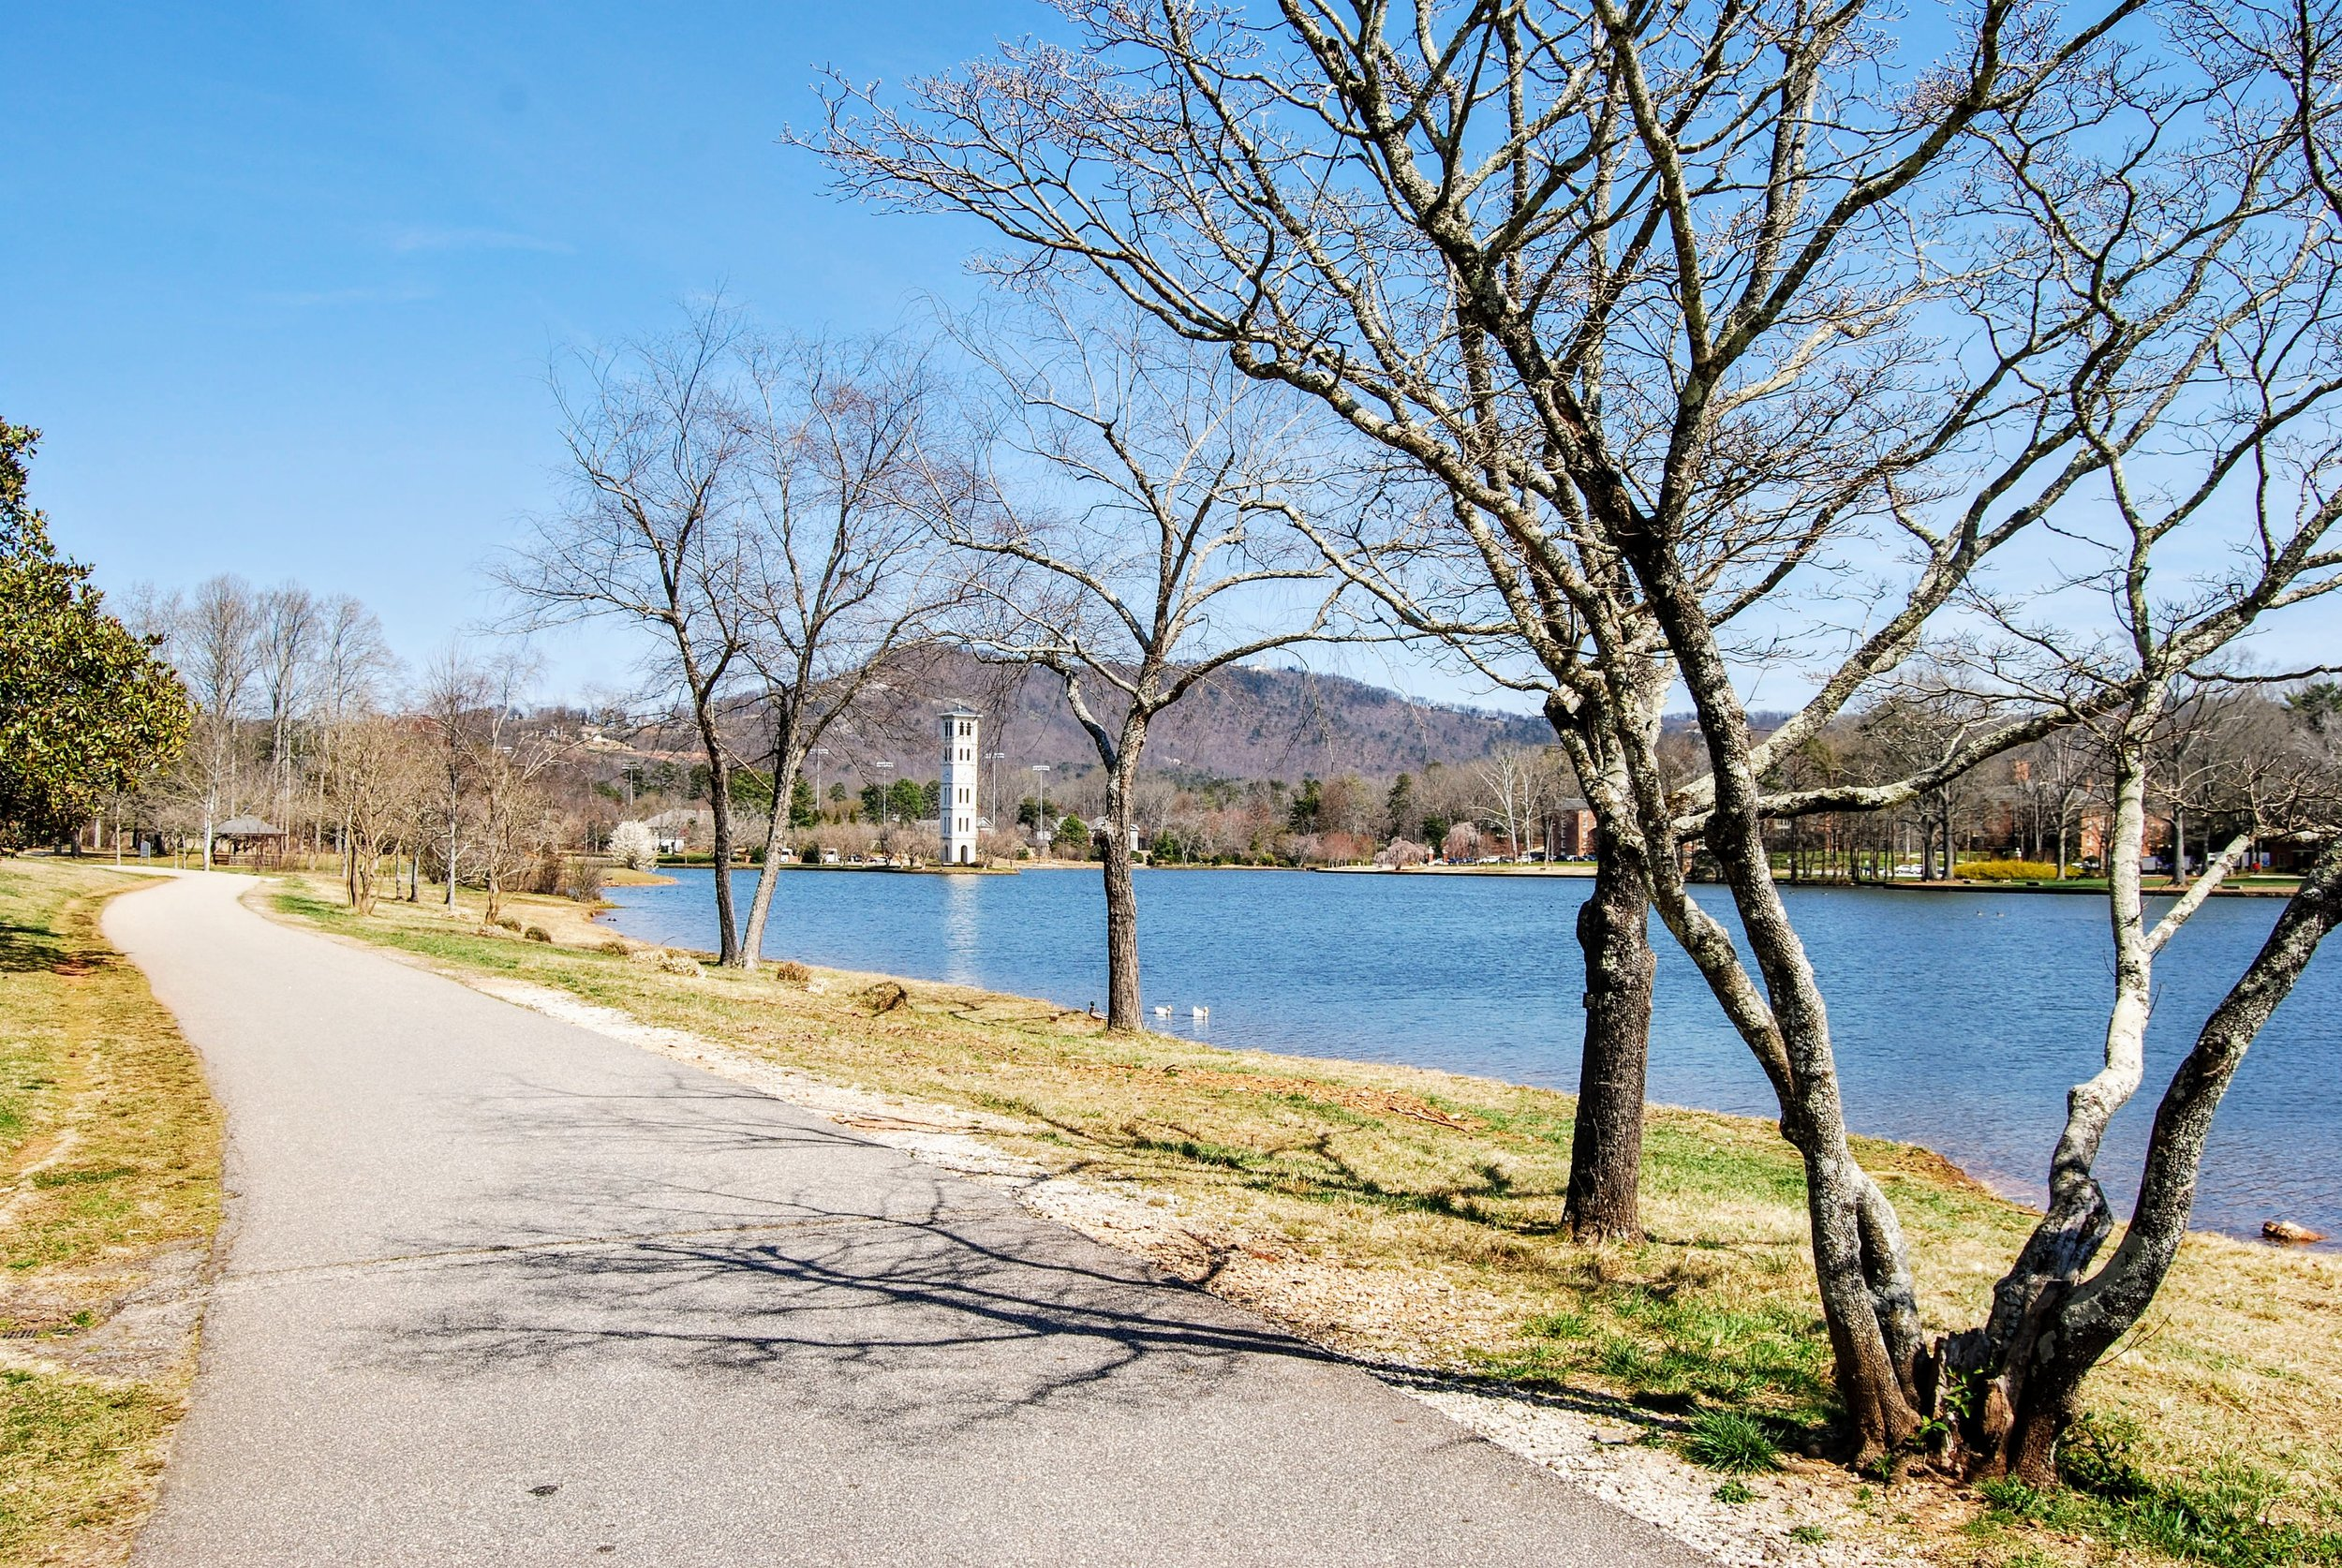 Furman's gorgeous campus. You can bike down the lakeside path a ways and then cut across (and up) a grassy bit to your left to get back to the Swamp Rabbit Trail.